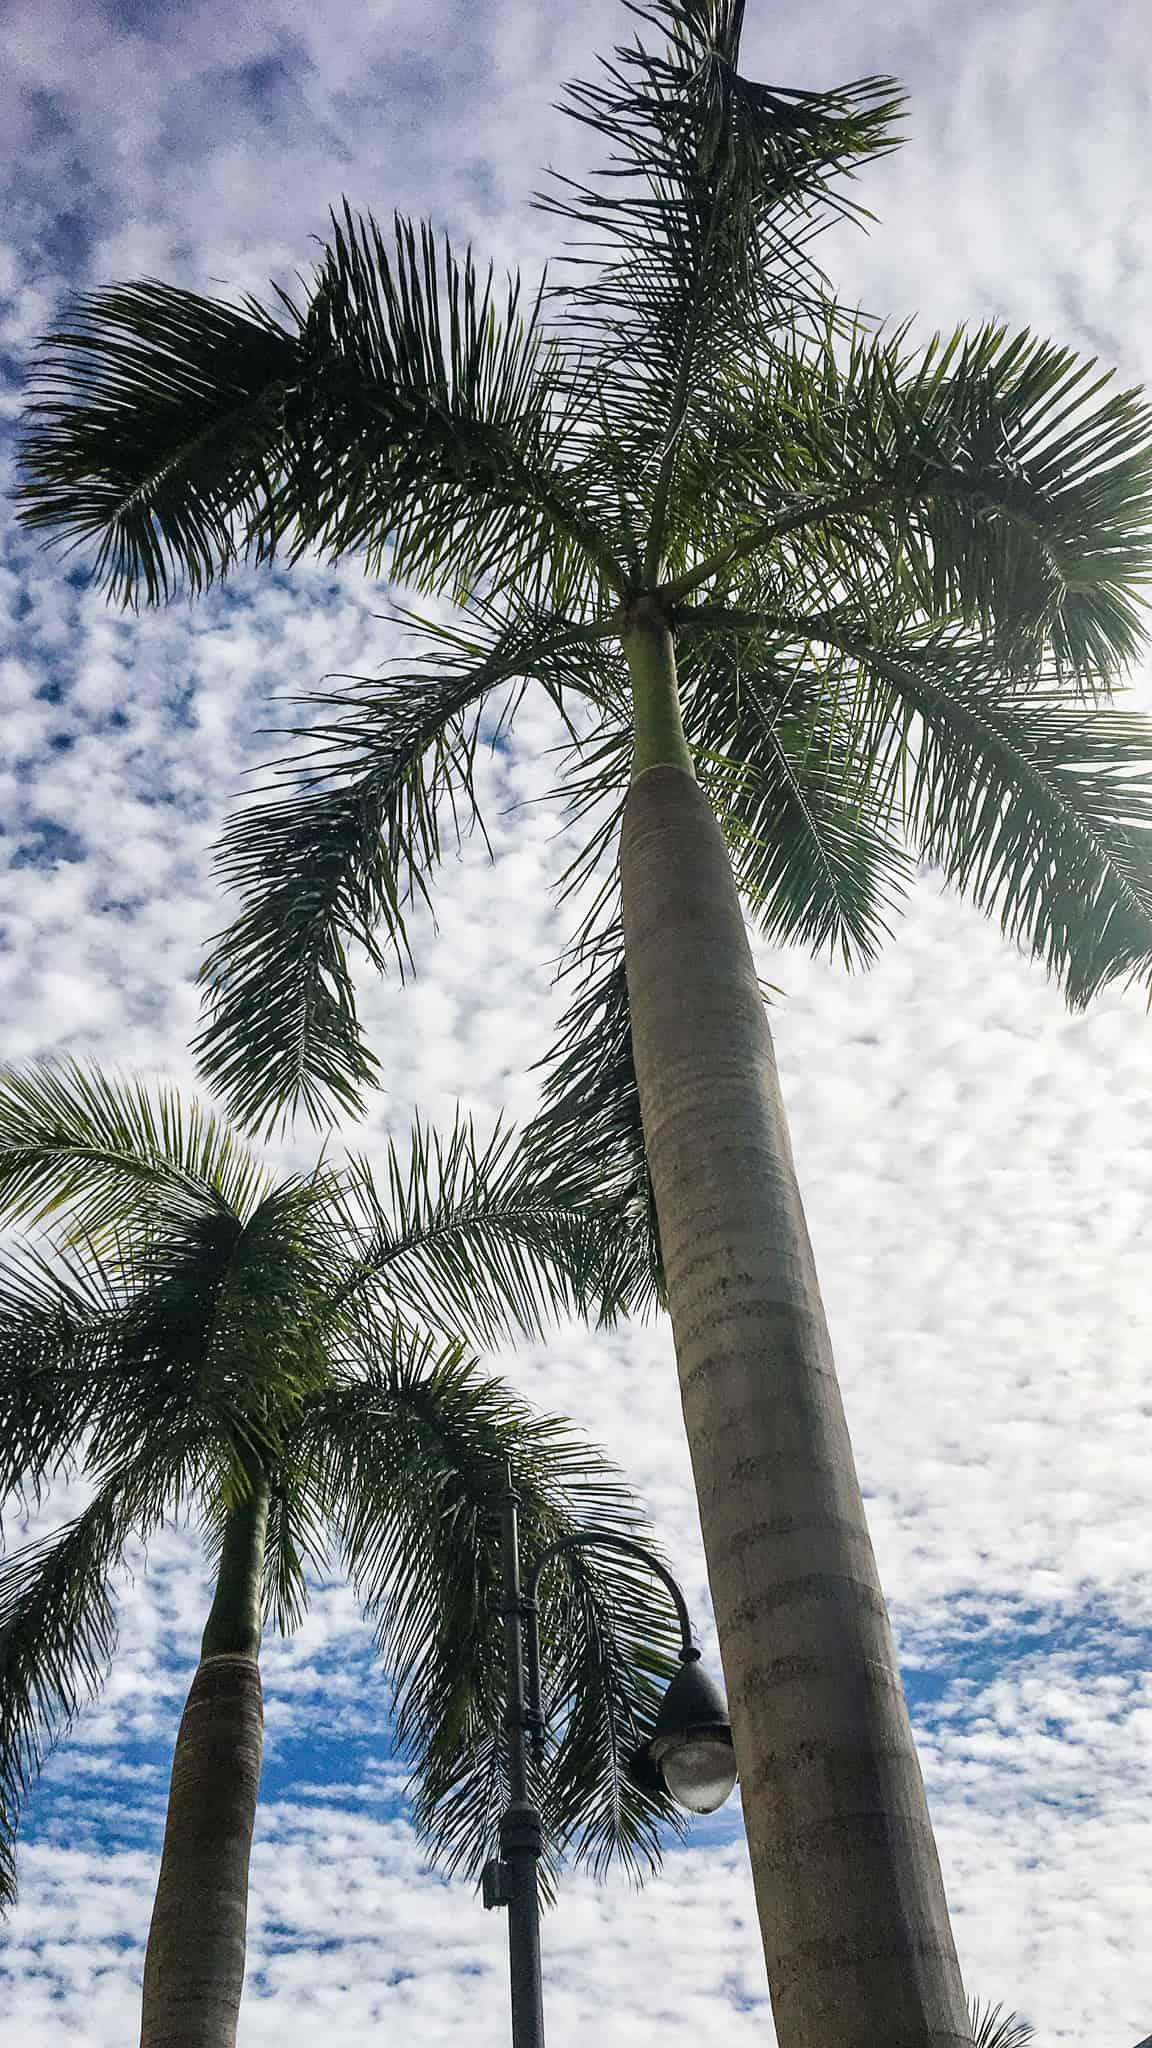 Palm trees against a cloud filled sky